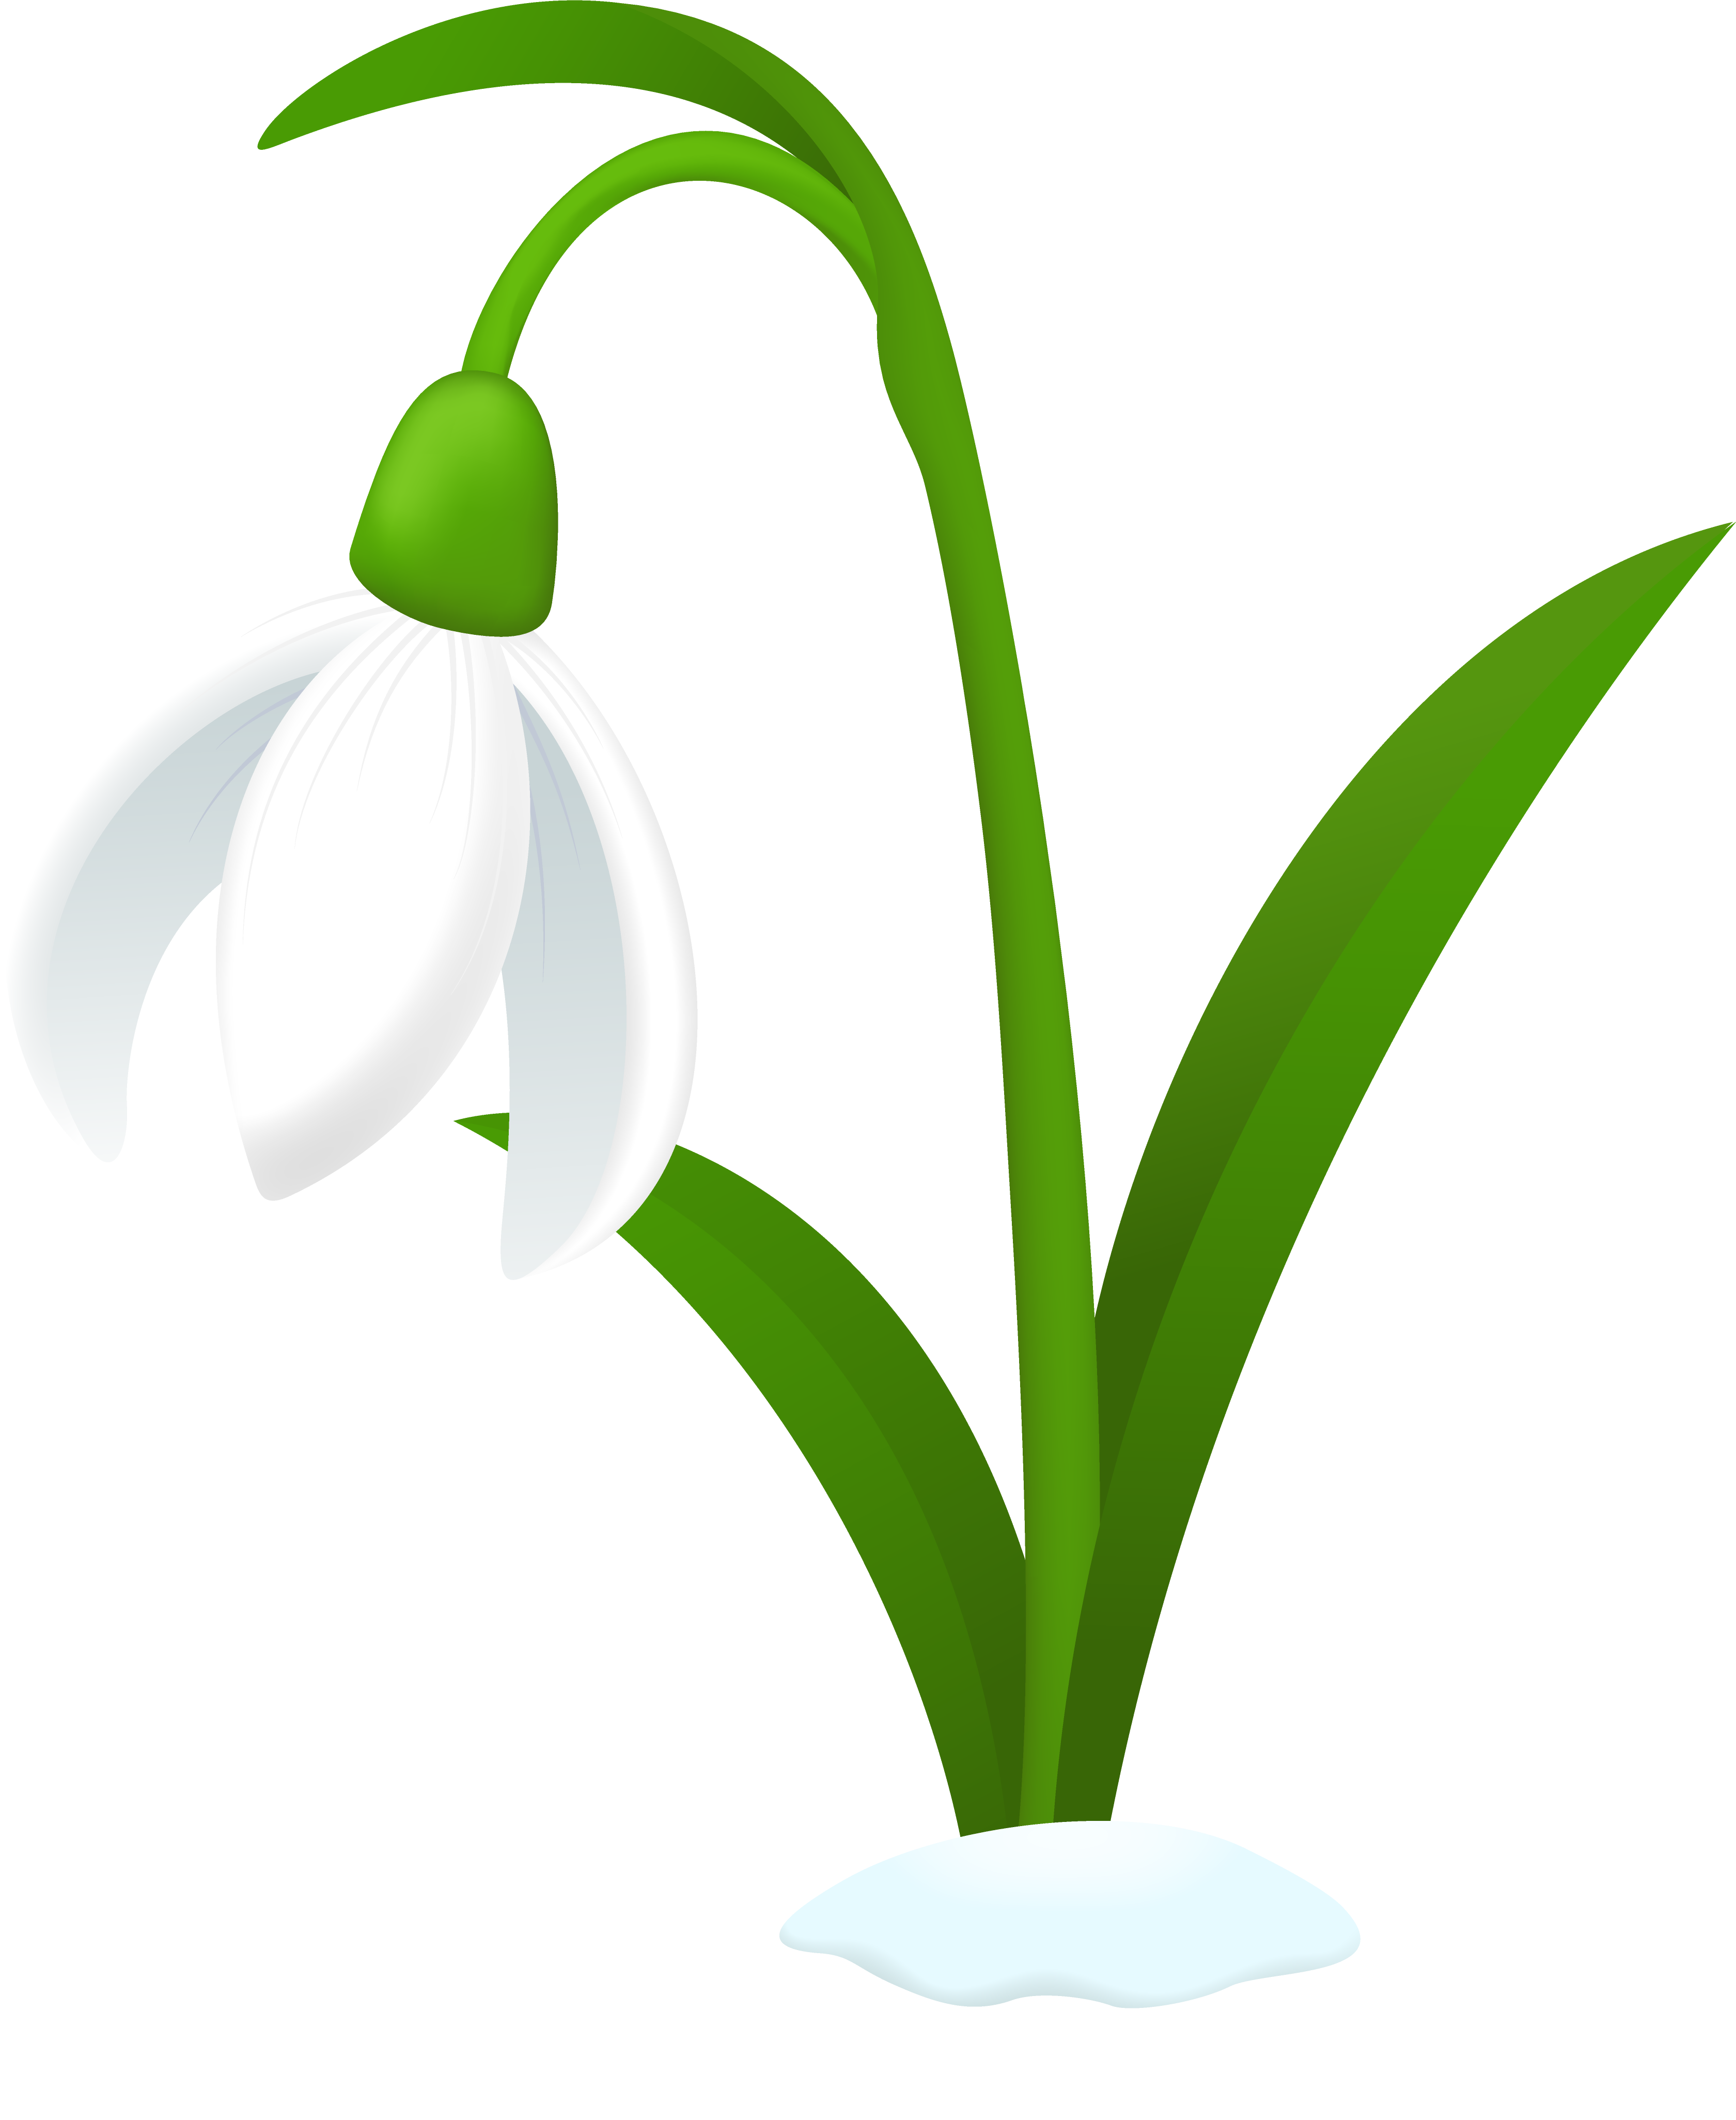 Snowdrop flower by TechRainbow on DeviantArt